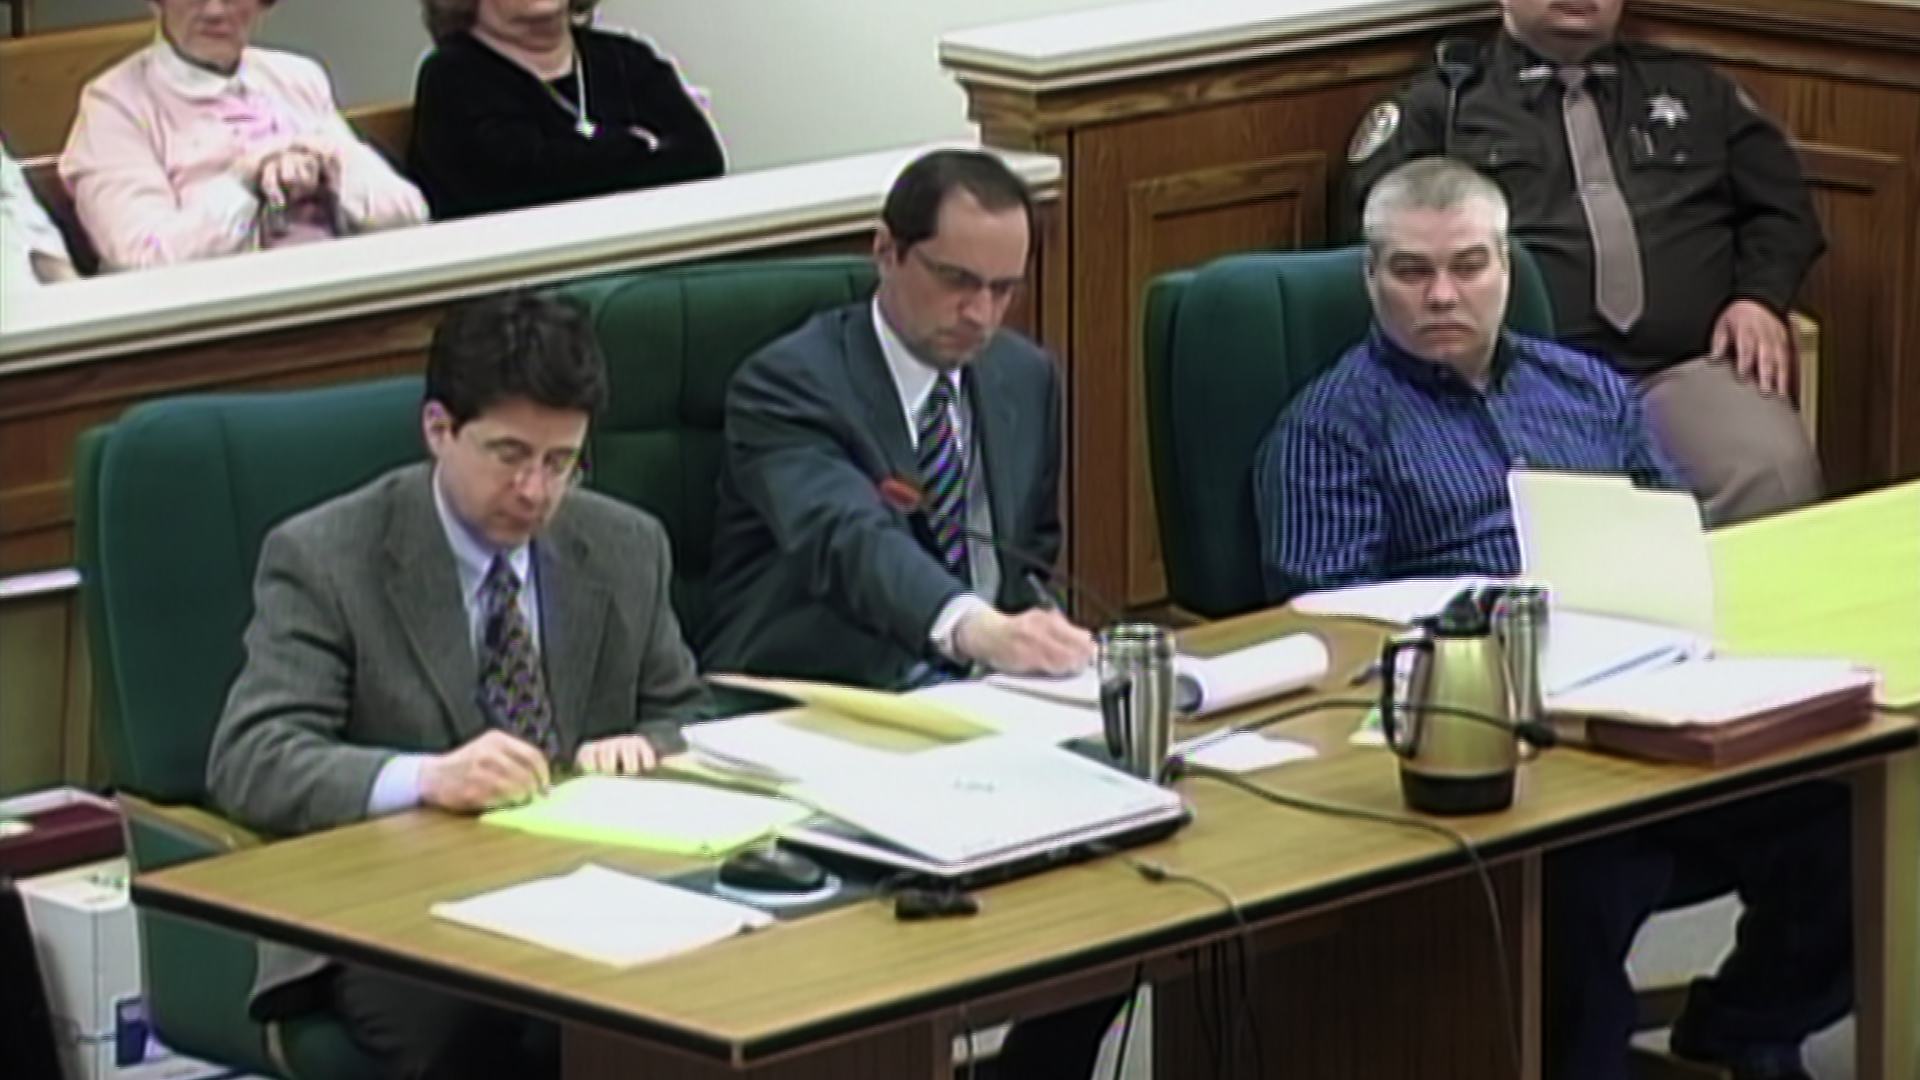 Dean Strang, Jerry Buting, and Steven Avery in 'Making a Murderer' Photo by Netflix